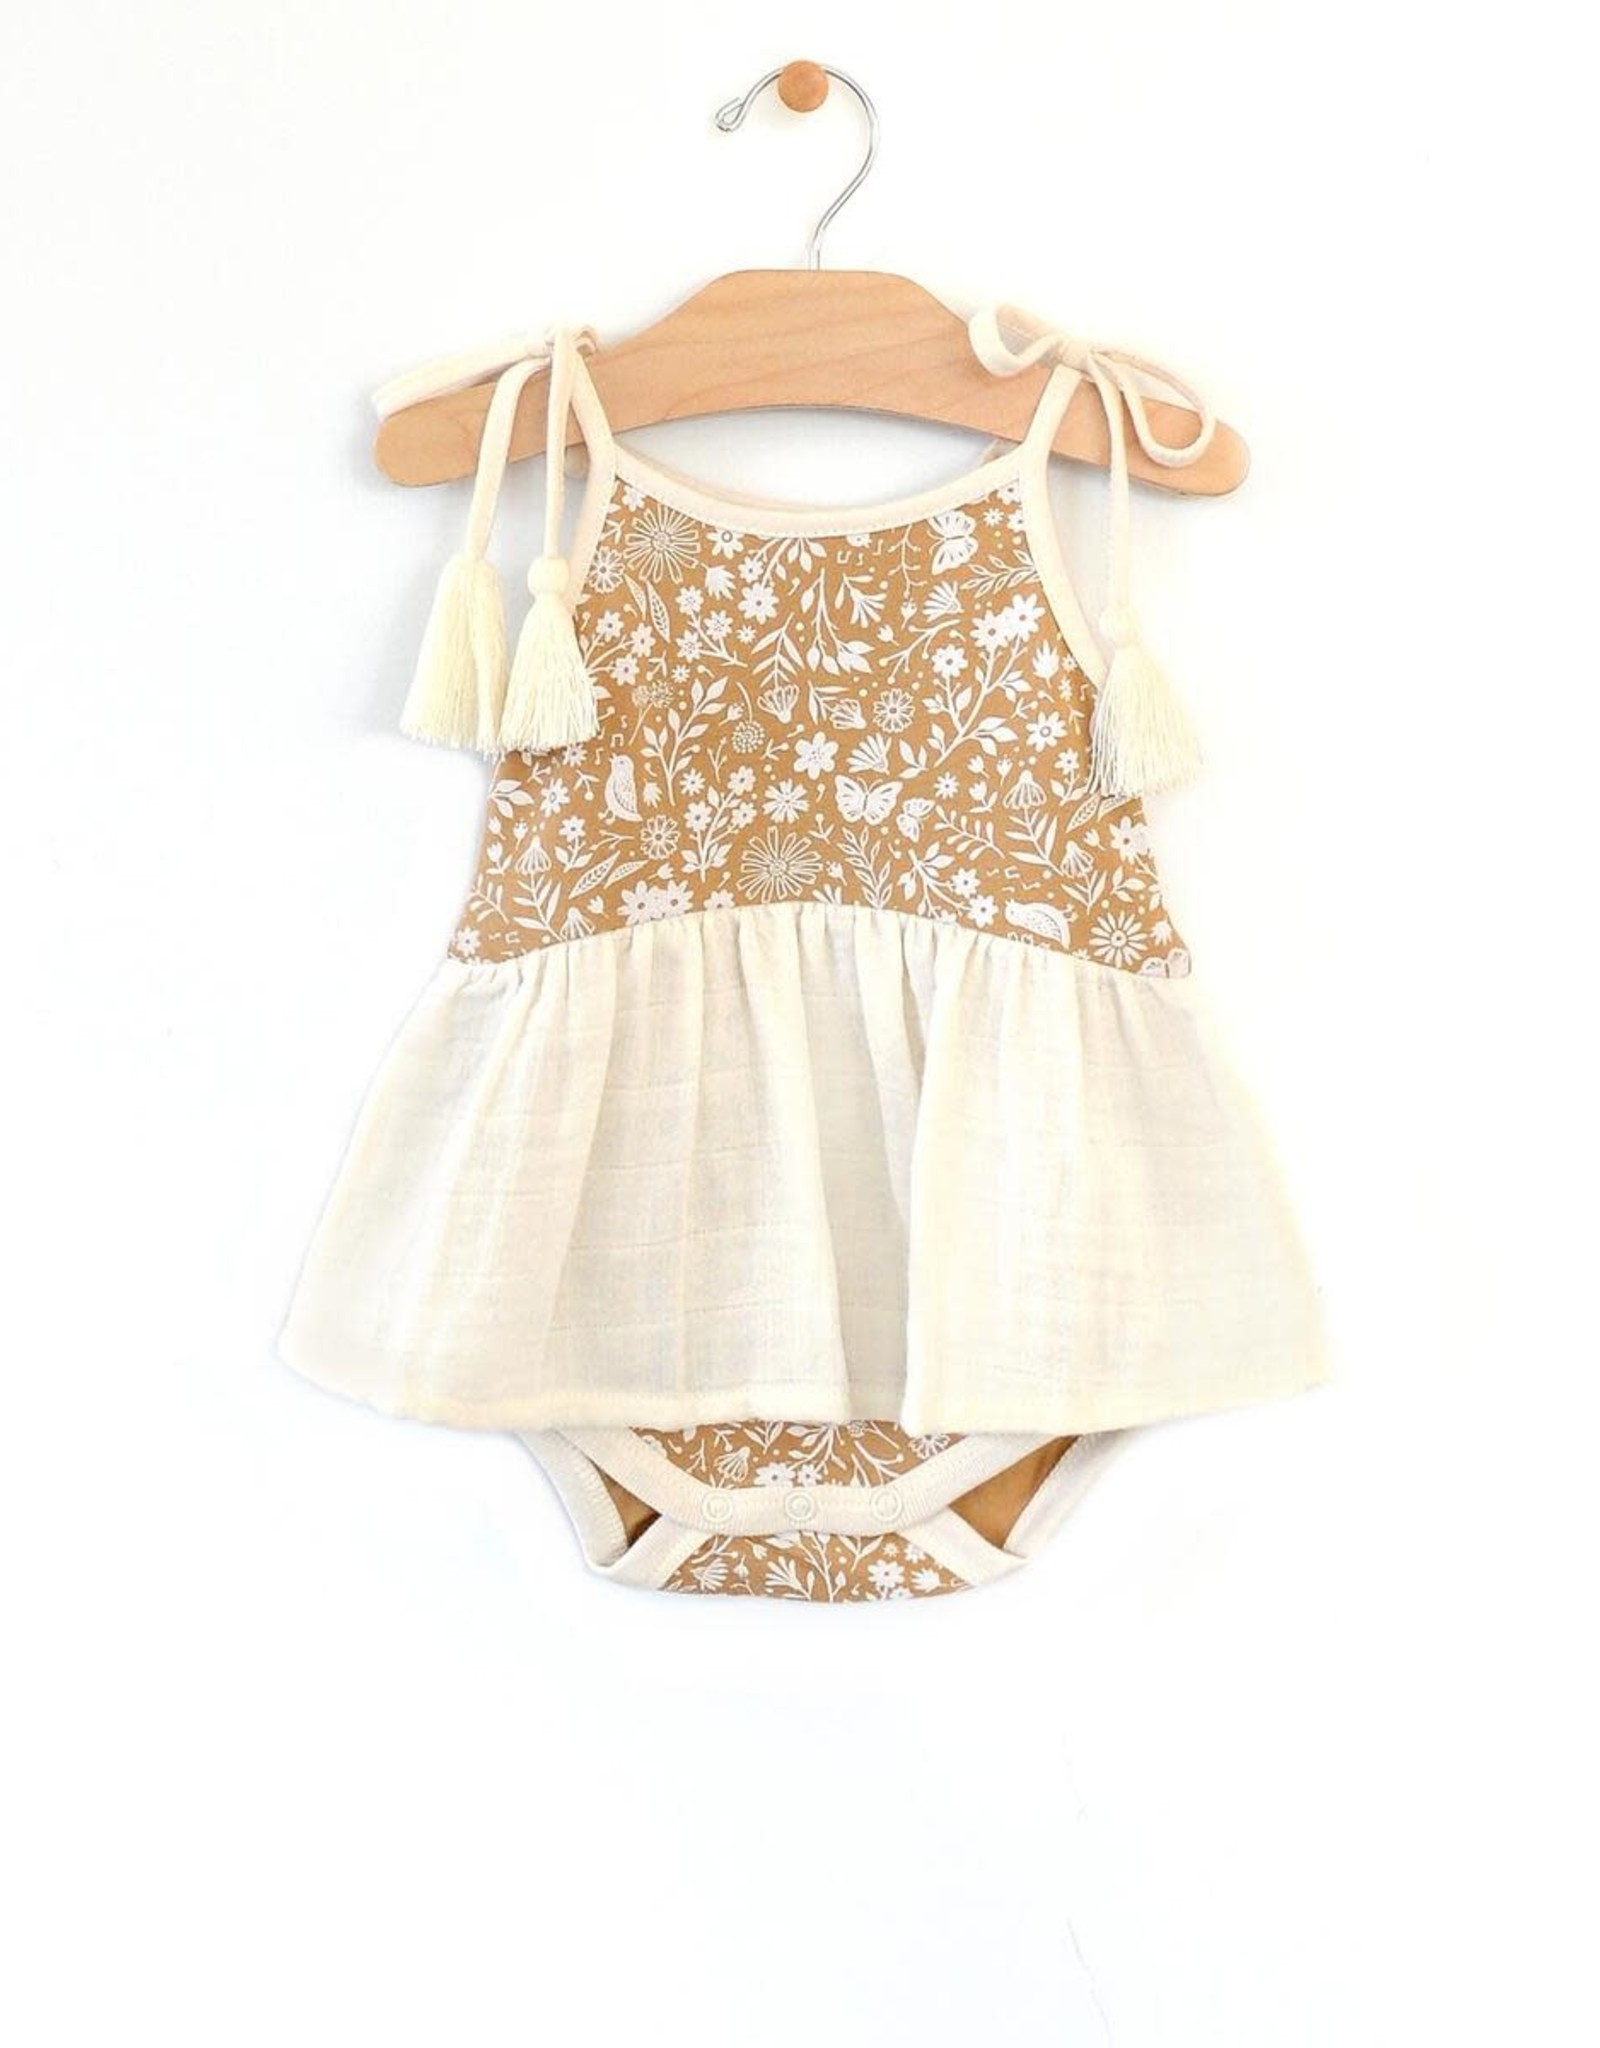 City Mouse Rib & Muslin Skirted Tank Bodysuit, Gold Garden